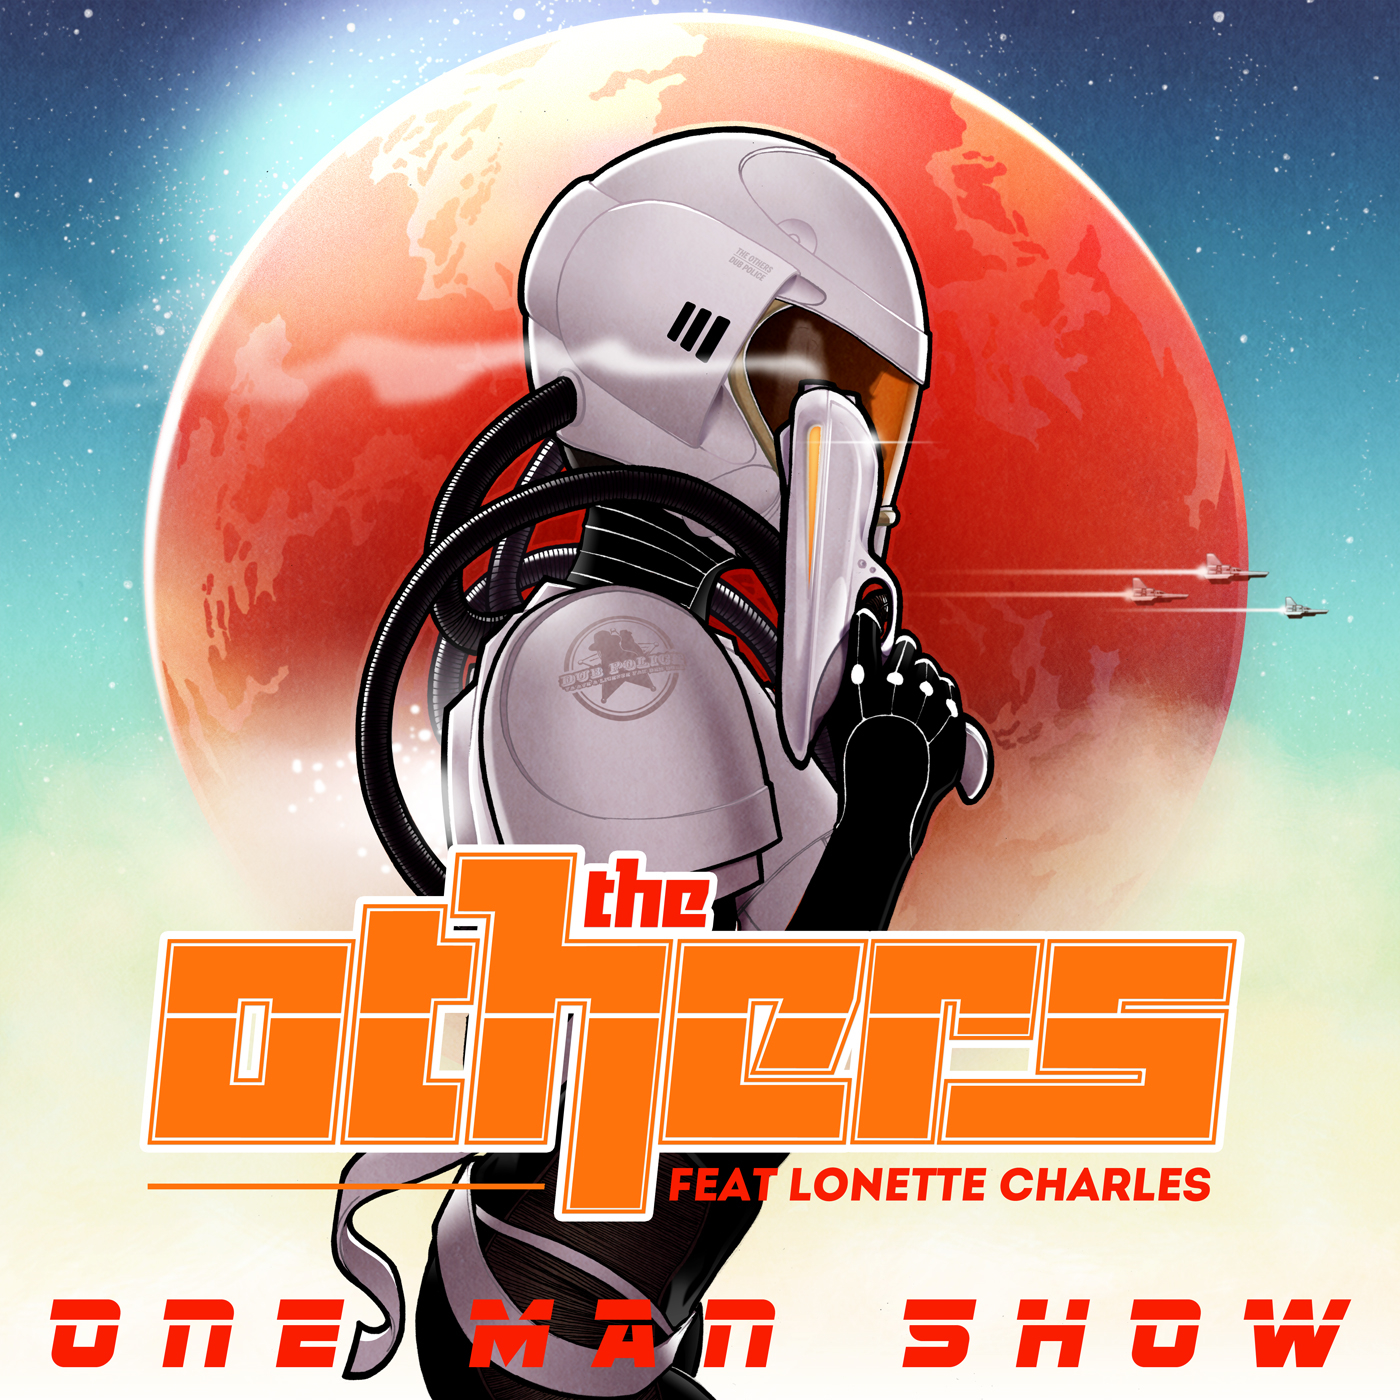 DP080: ONE MAN SHOW FEAT. LONETTE CHARLES